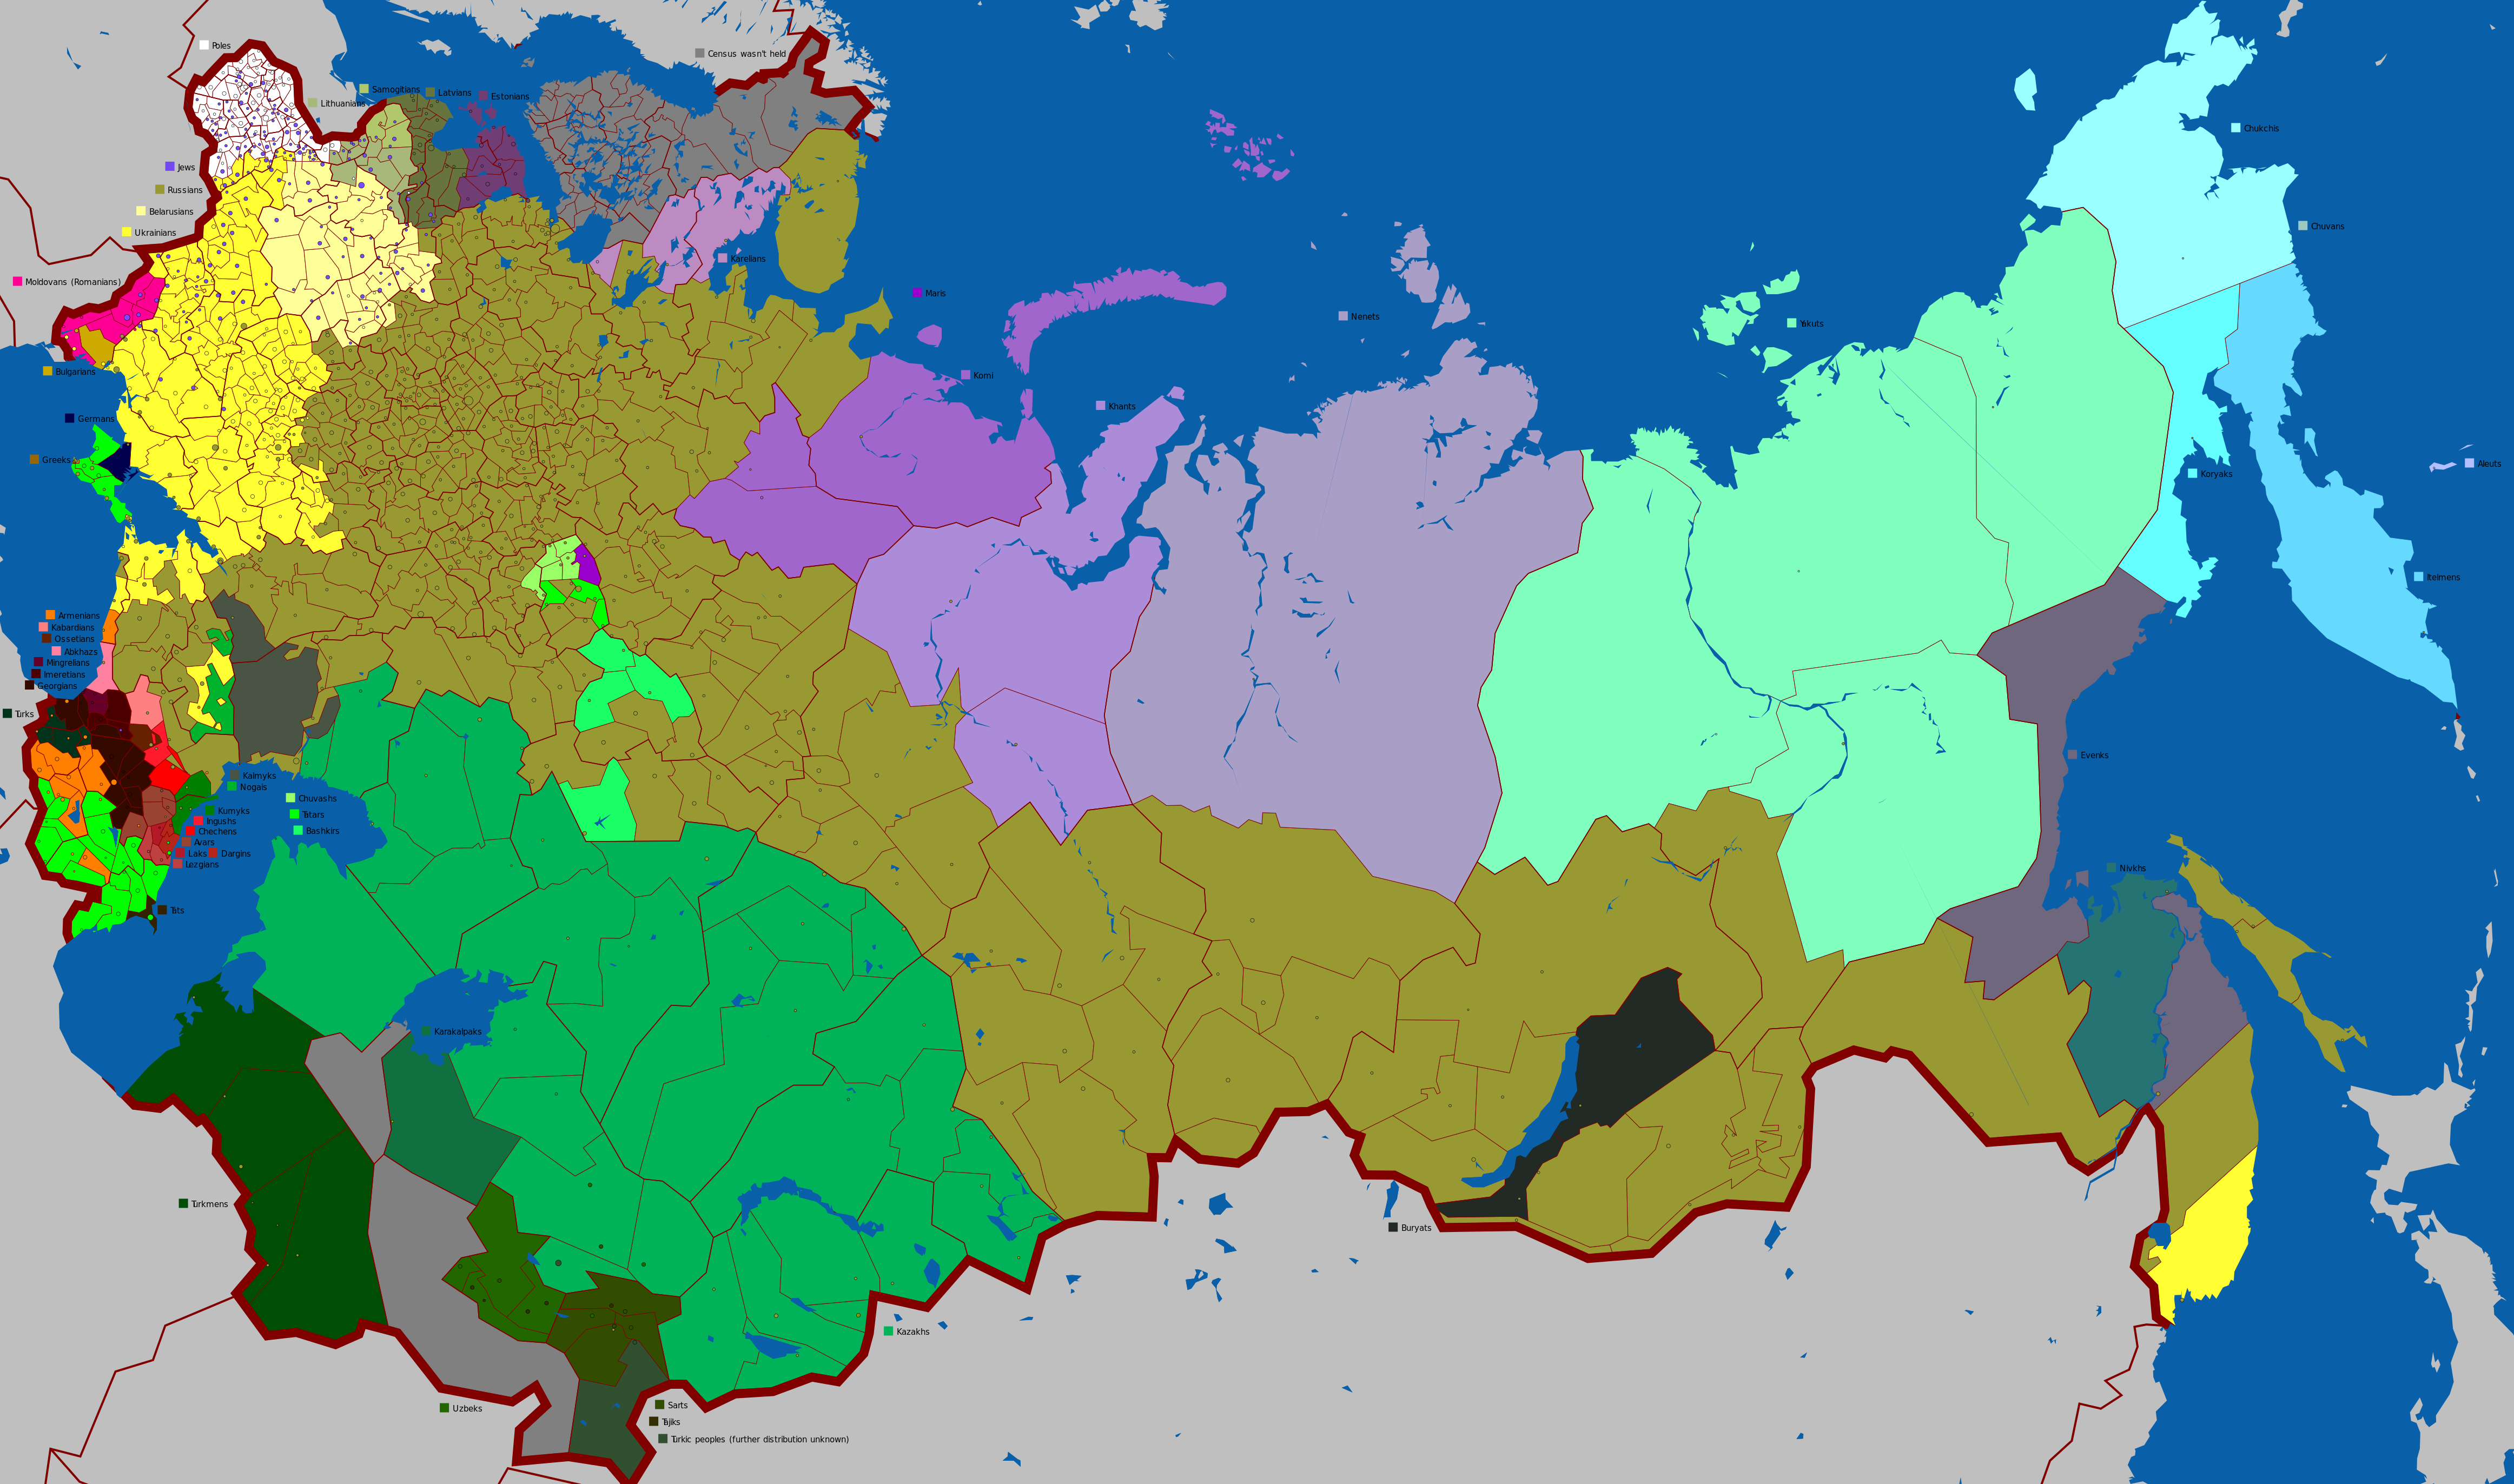 Subdivisions of the Russian Empire by largest ethnolinguistic group